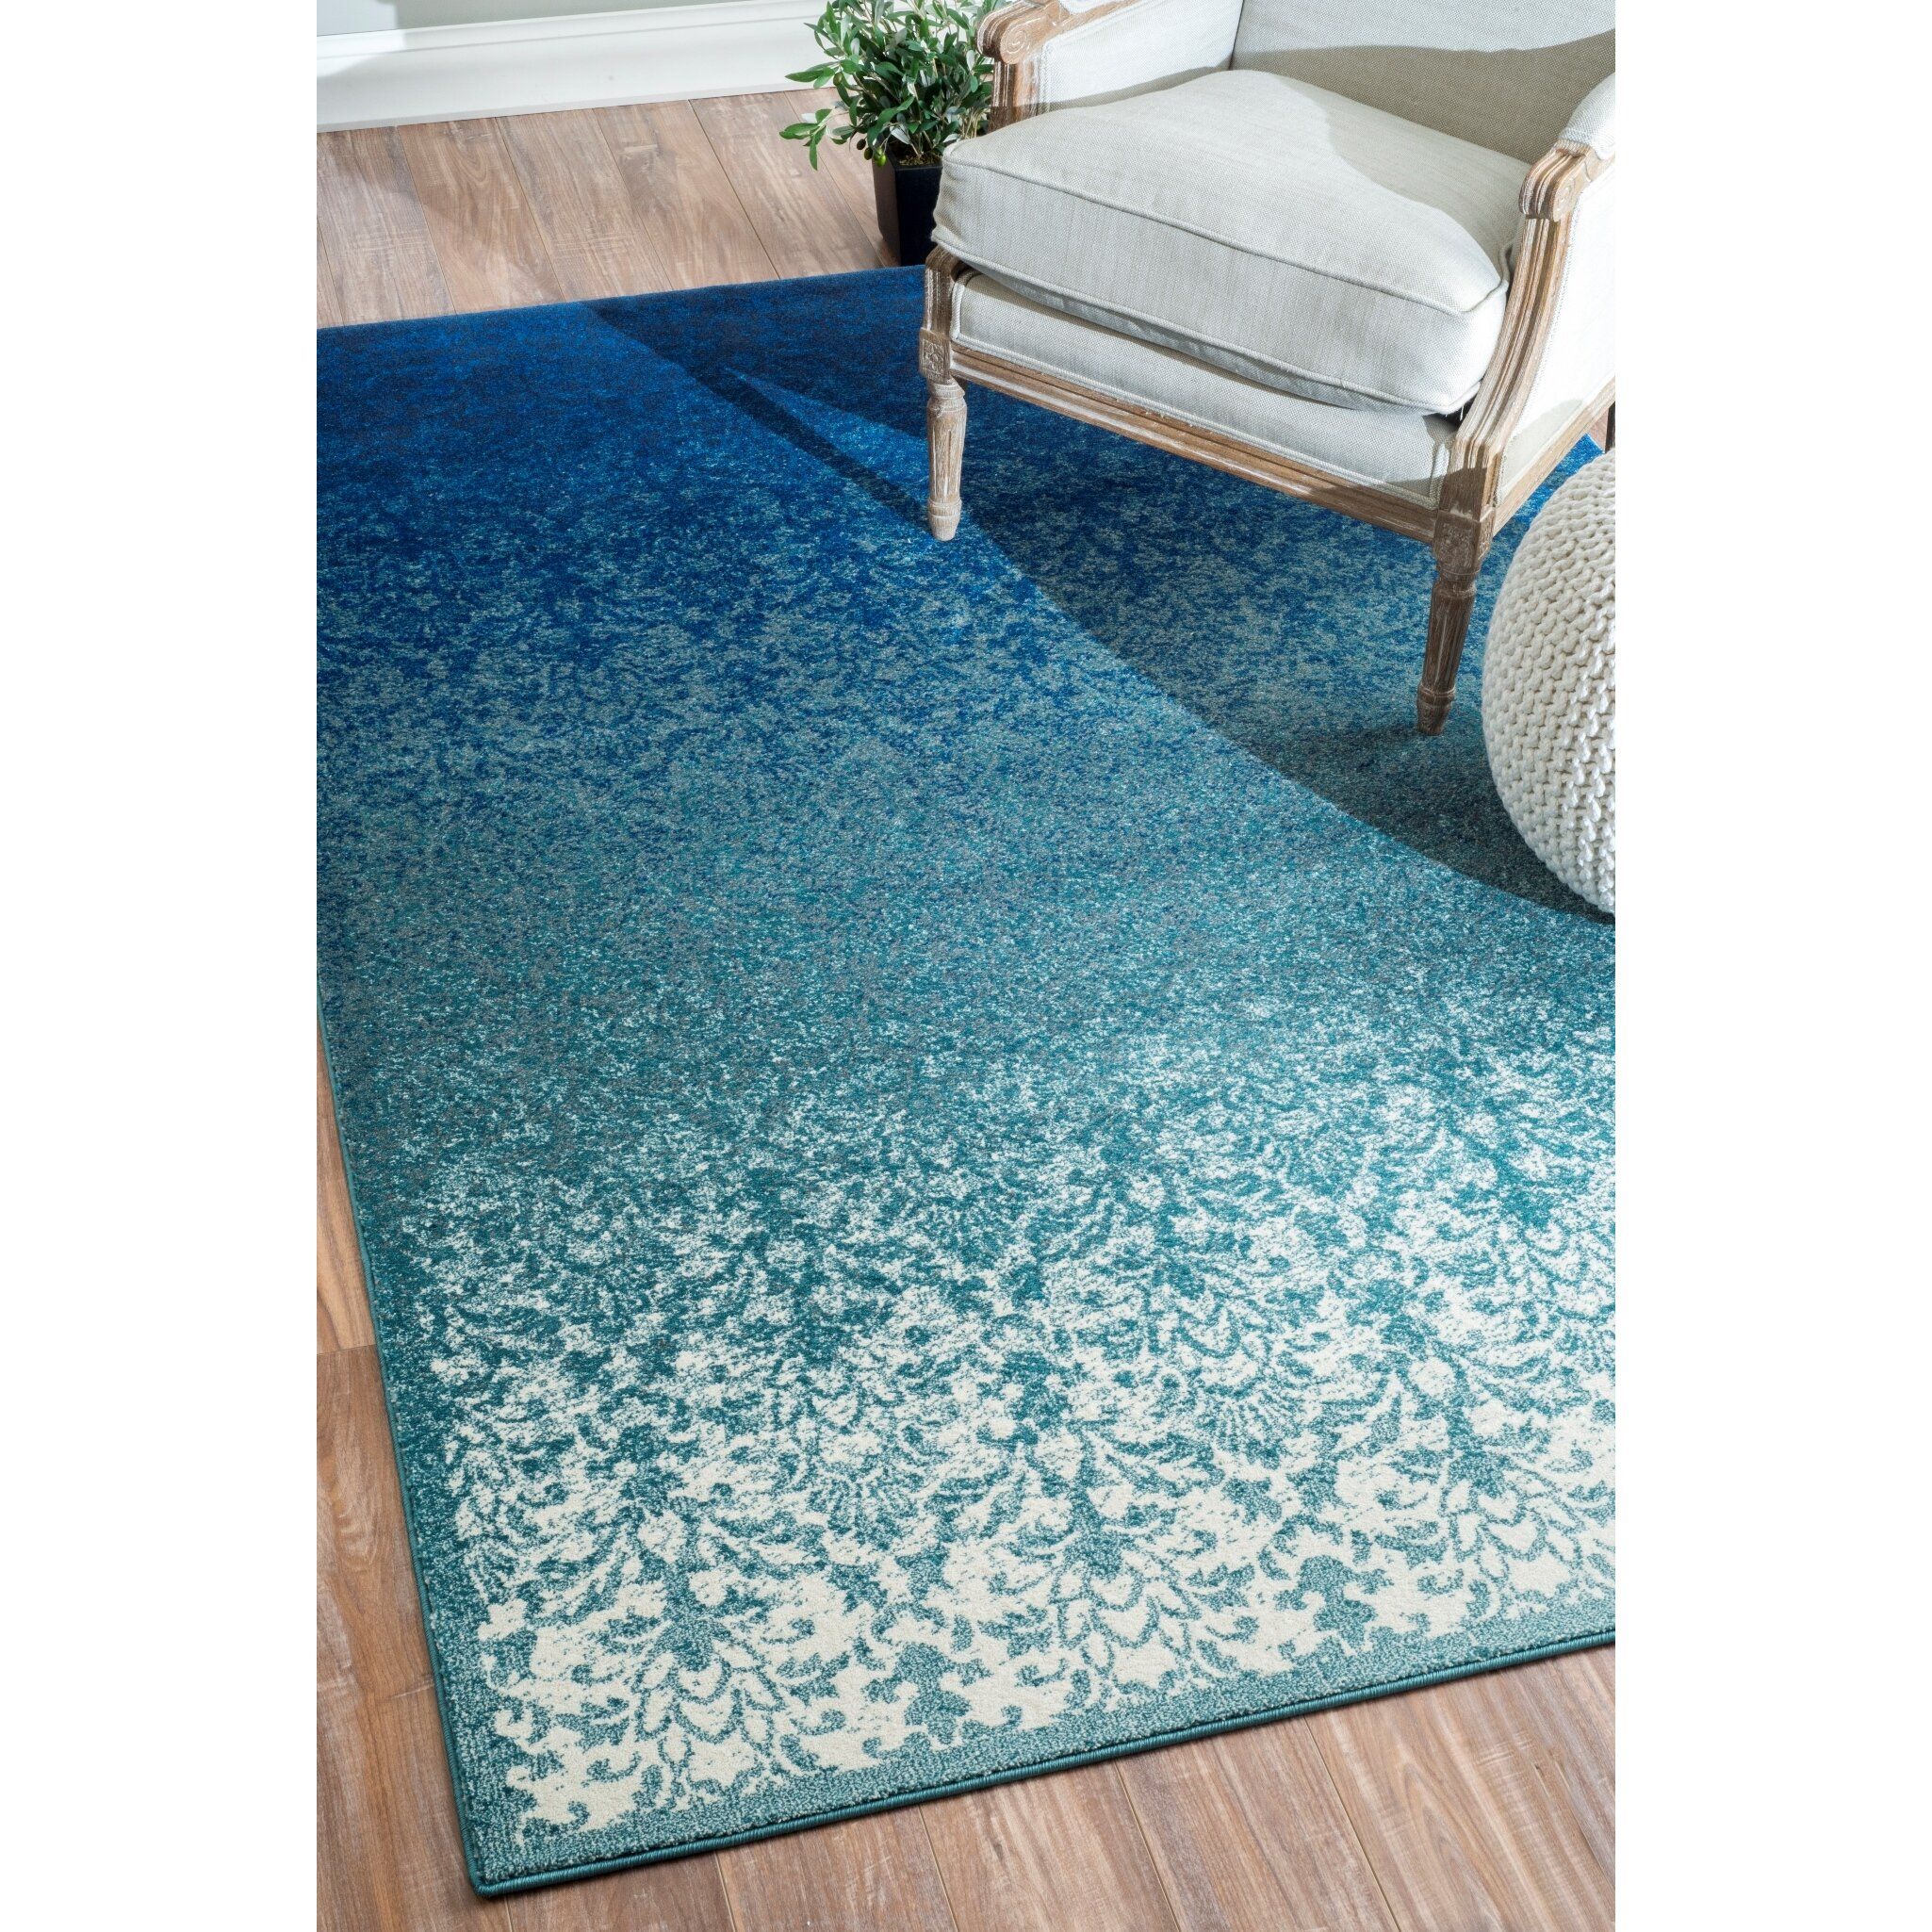 Nuloom crandall turquoise area rug reviews wayfair for Where can i buy area rugs